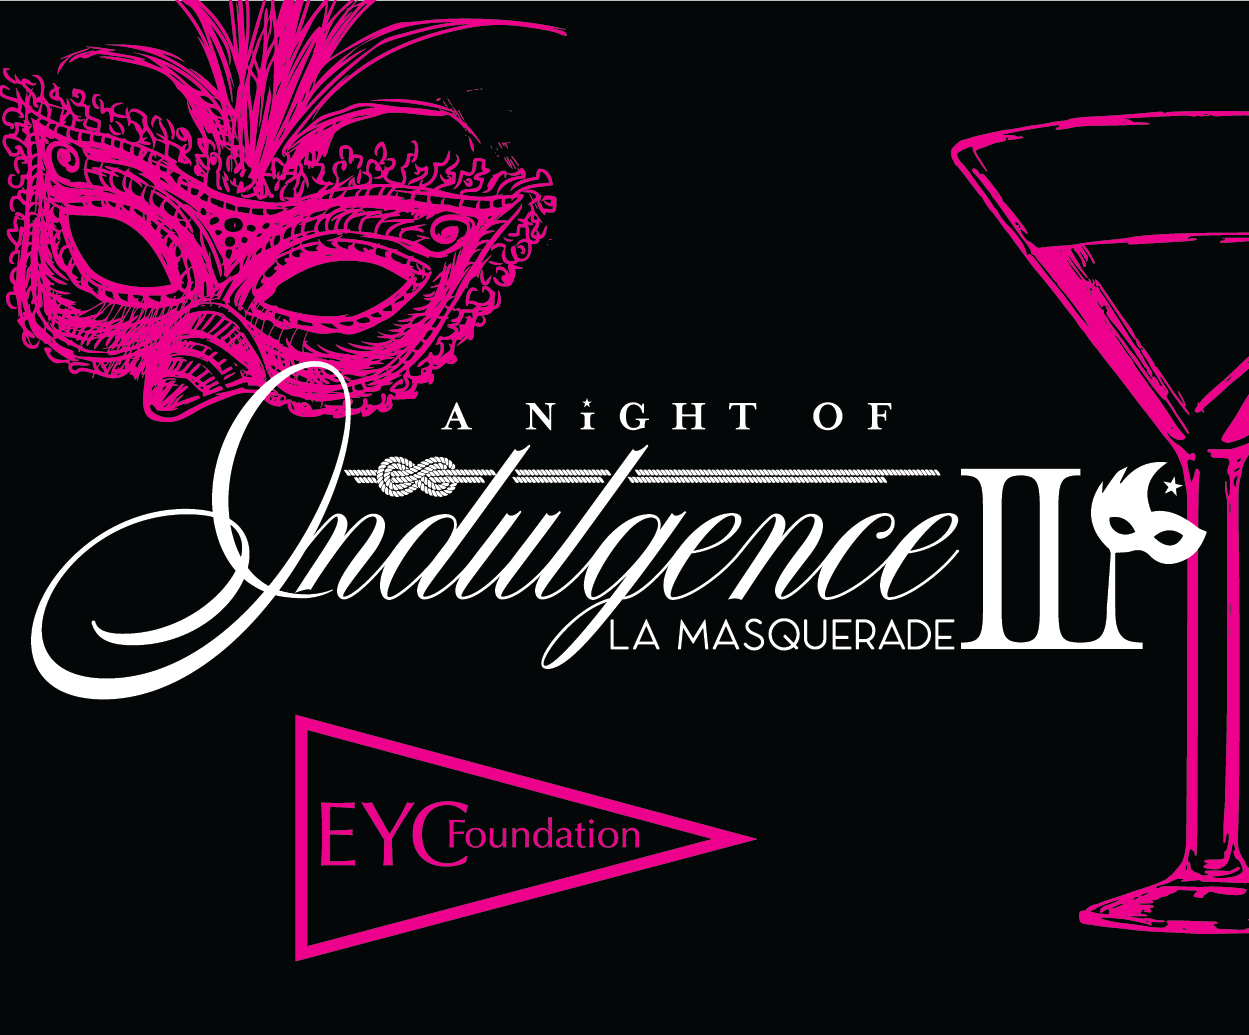 Night of Indulgence La Masquerade